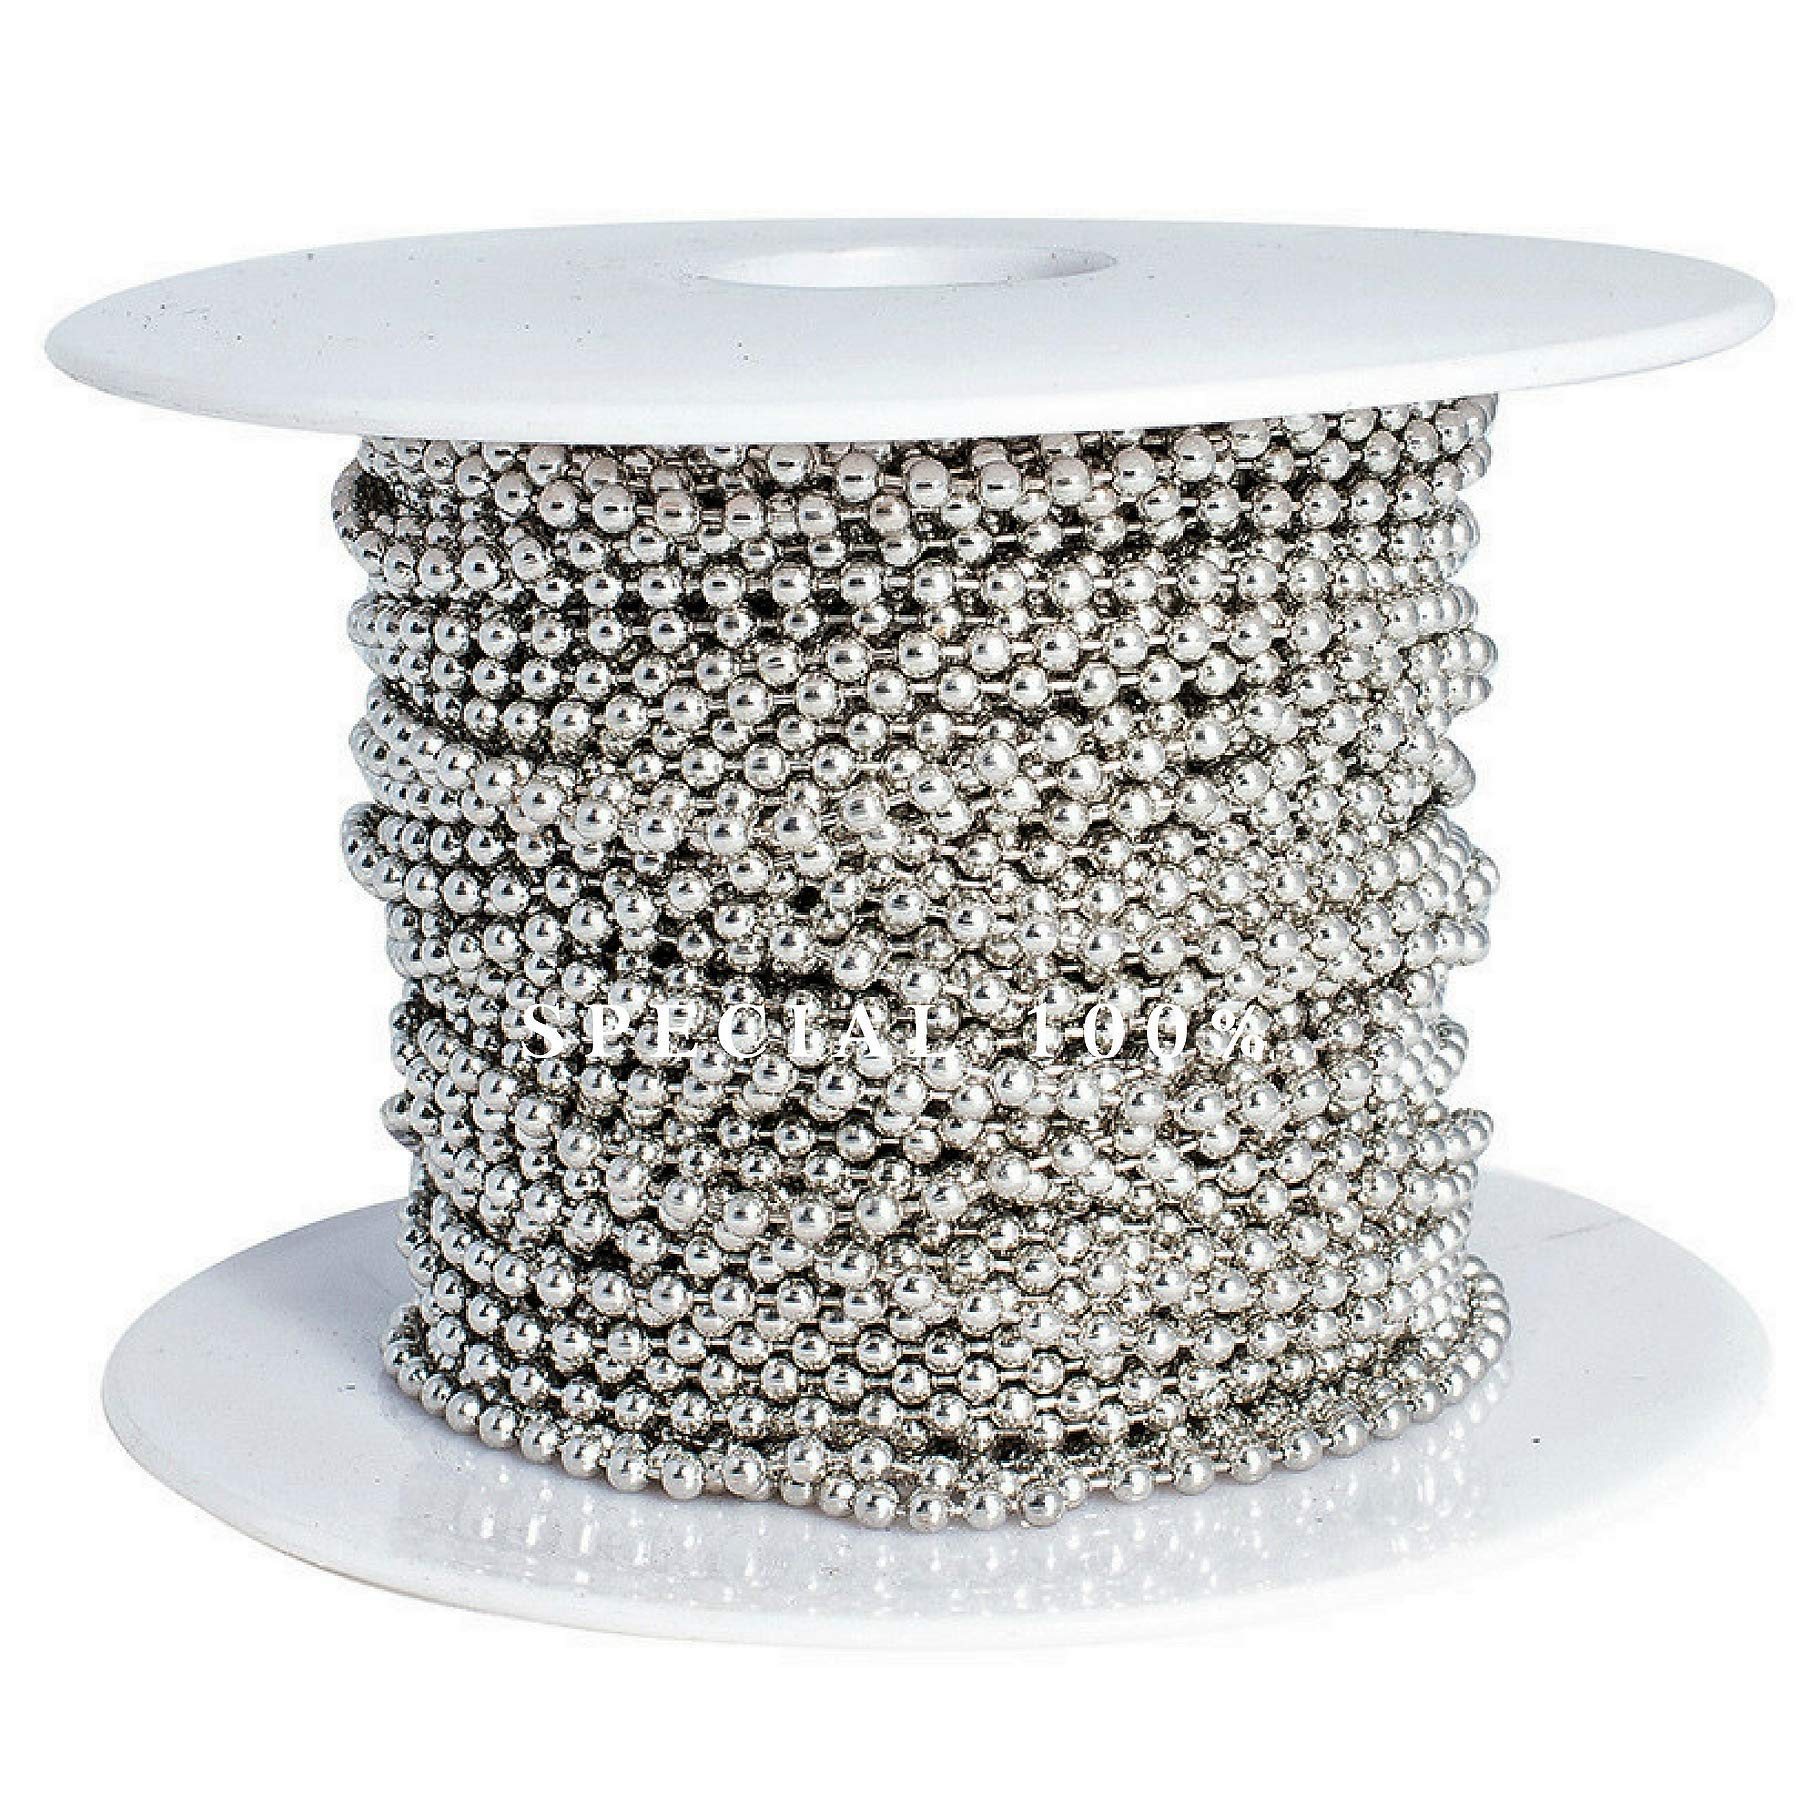 Ball Chain Spool #3 Nickel Plated Steel Bead Chain 2.4 Diameter 100 Feet (33 Yards) Included 30 Pc Matching connectors by Special100% by Special100%